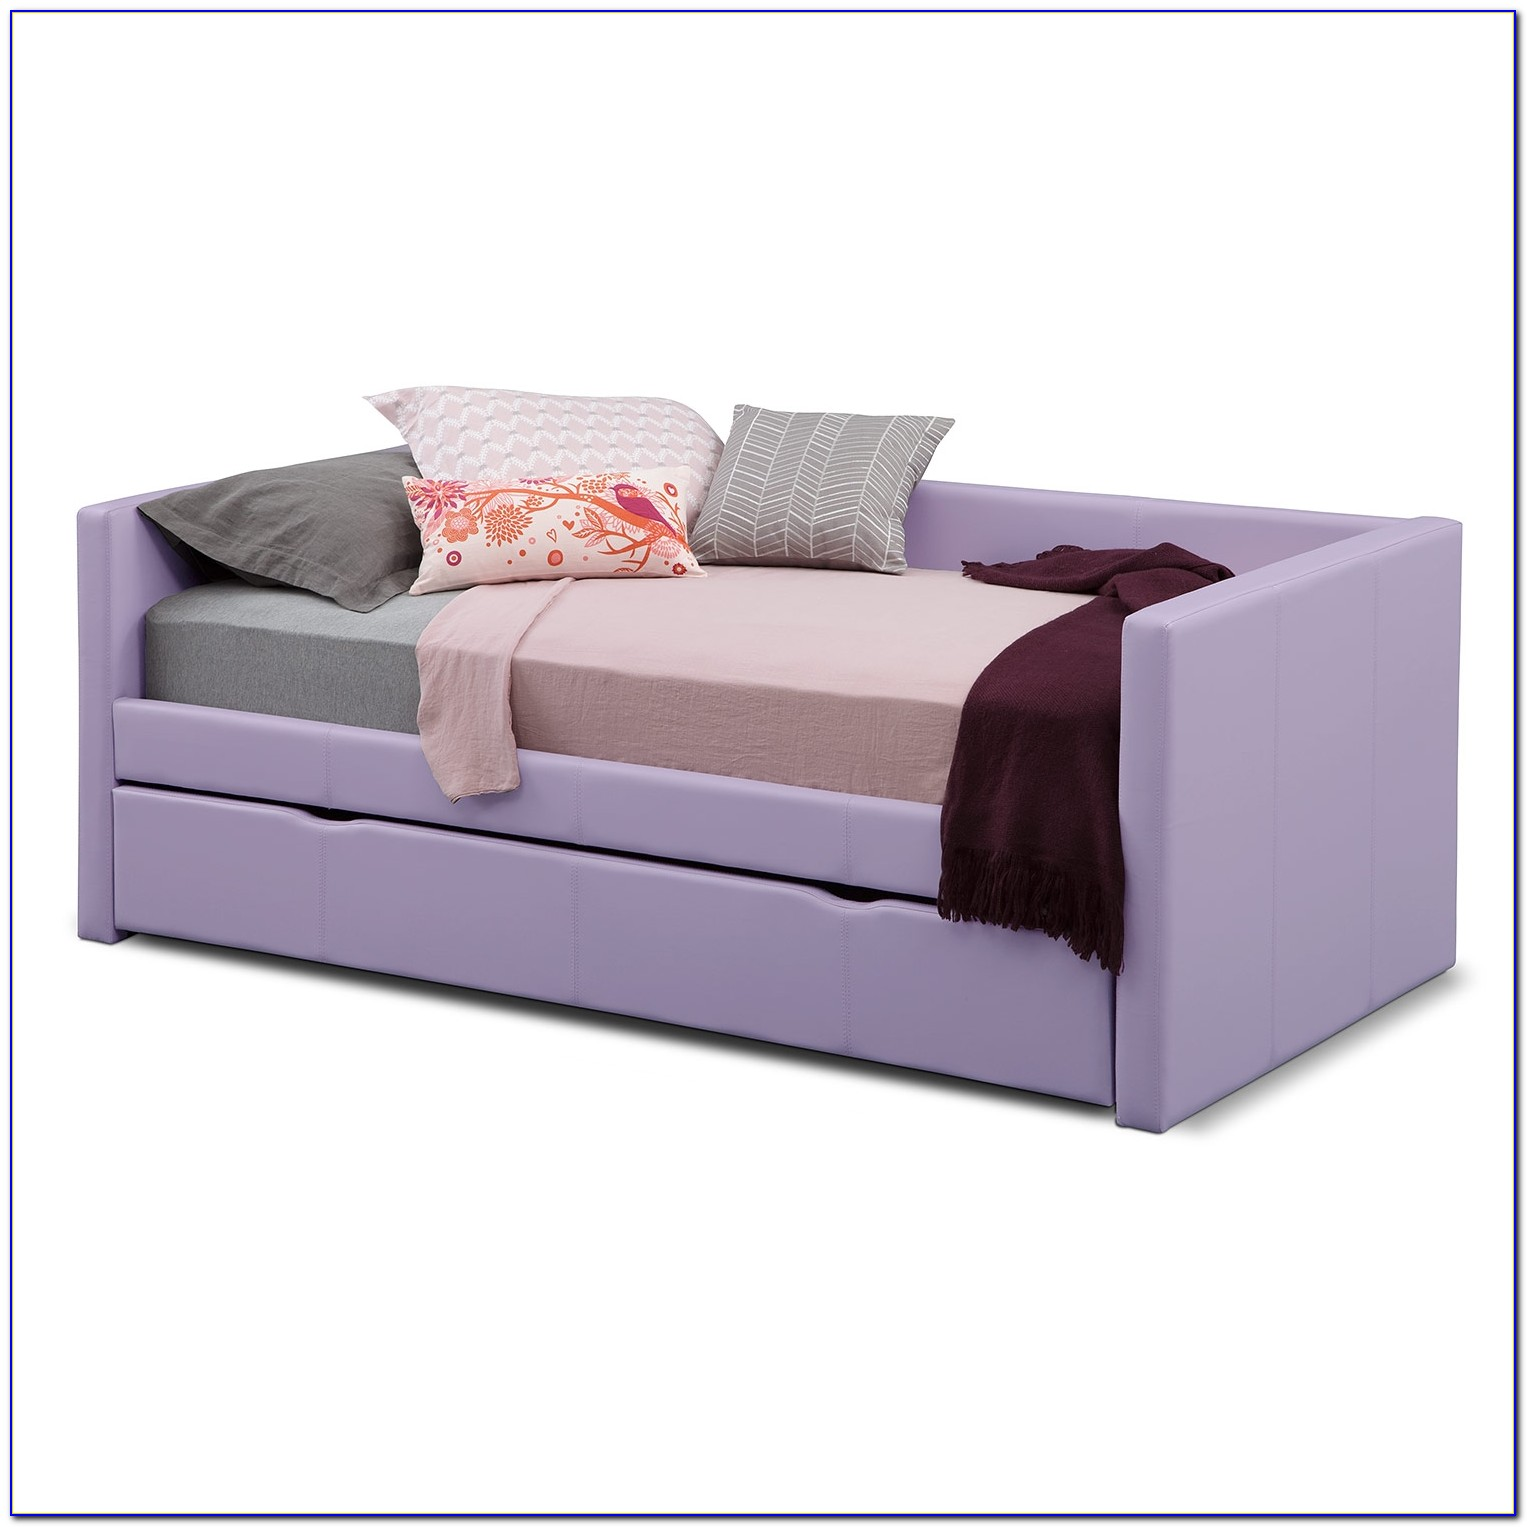 Daybeds With Trundle Option